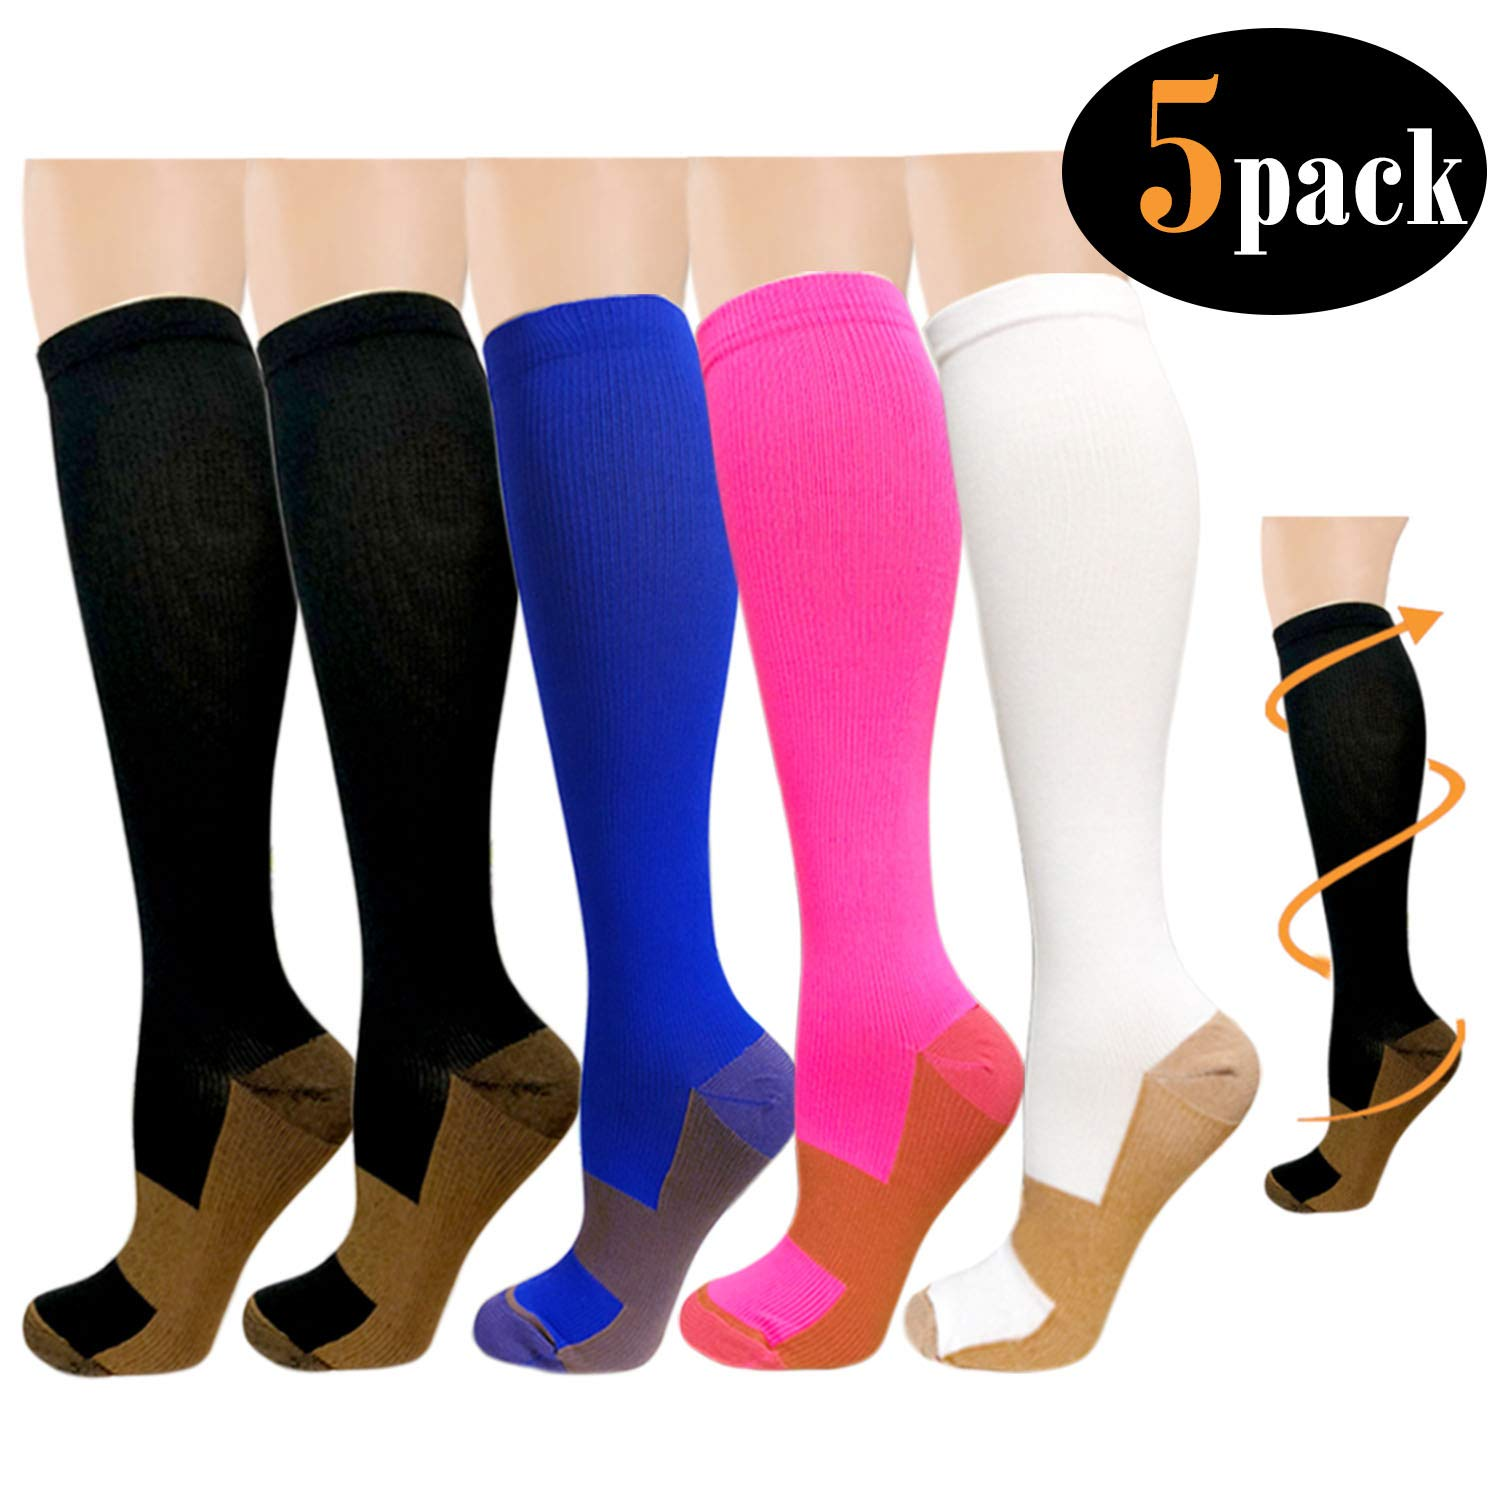 Copper Compression Socks For Women & Men(5 Pairs)- Best For Running, Athletic, Medical, Pregnancy and Travel -15-20mmHg Assort2) J5T4X